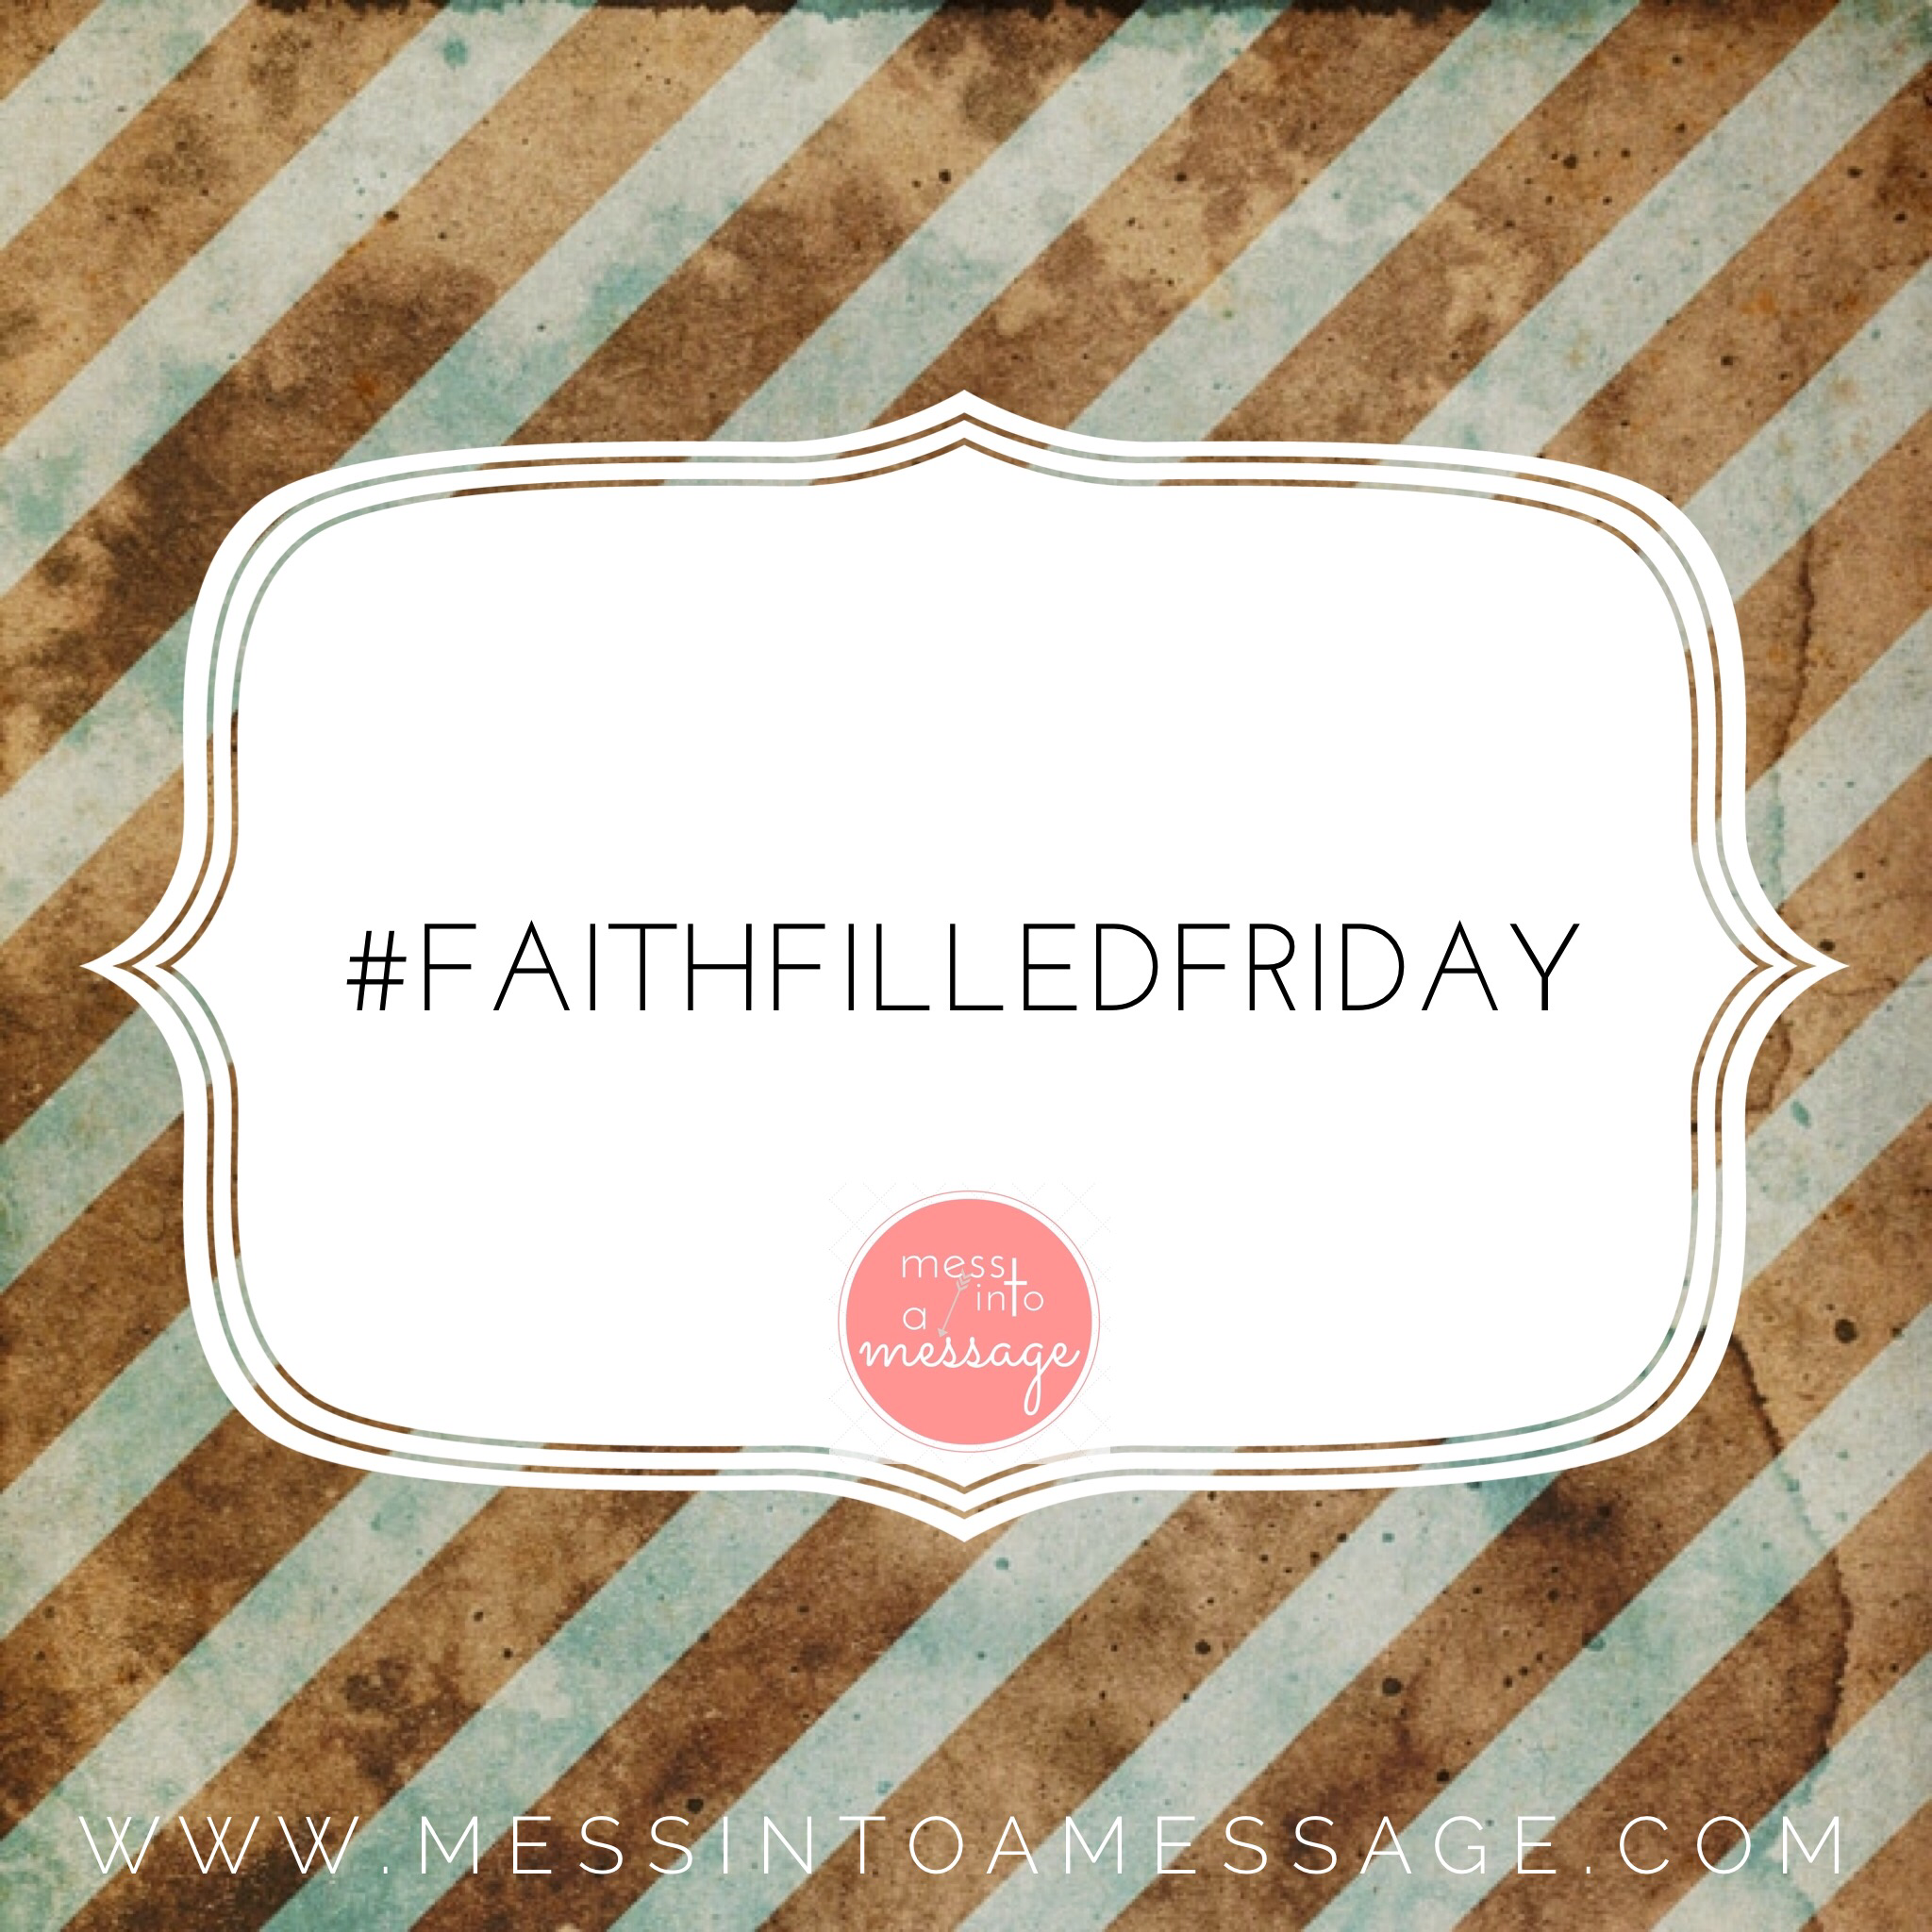 #faithfilledfriday: When God is faithful in our obedience.